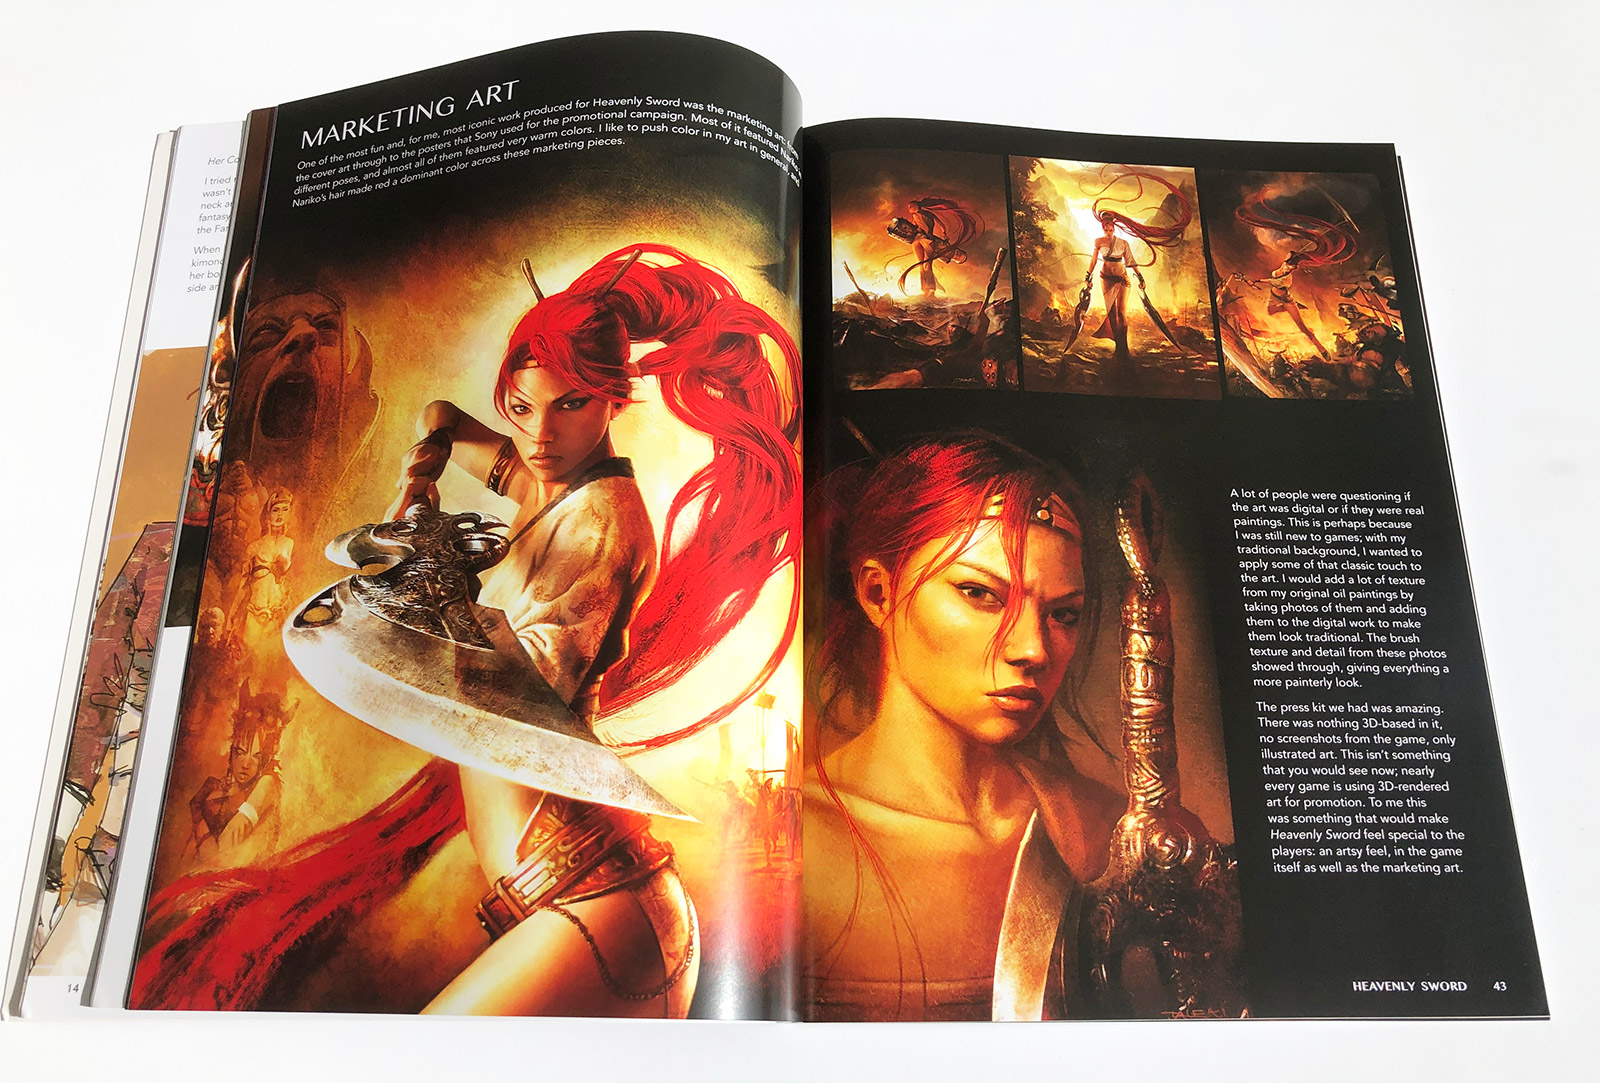 Talexi - The Concept Art of Alessandro Taini Book Review